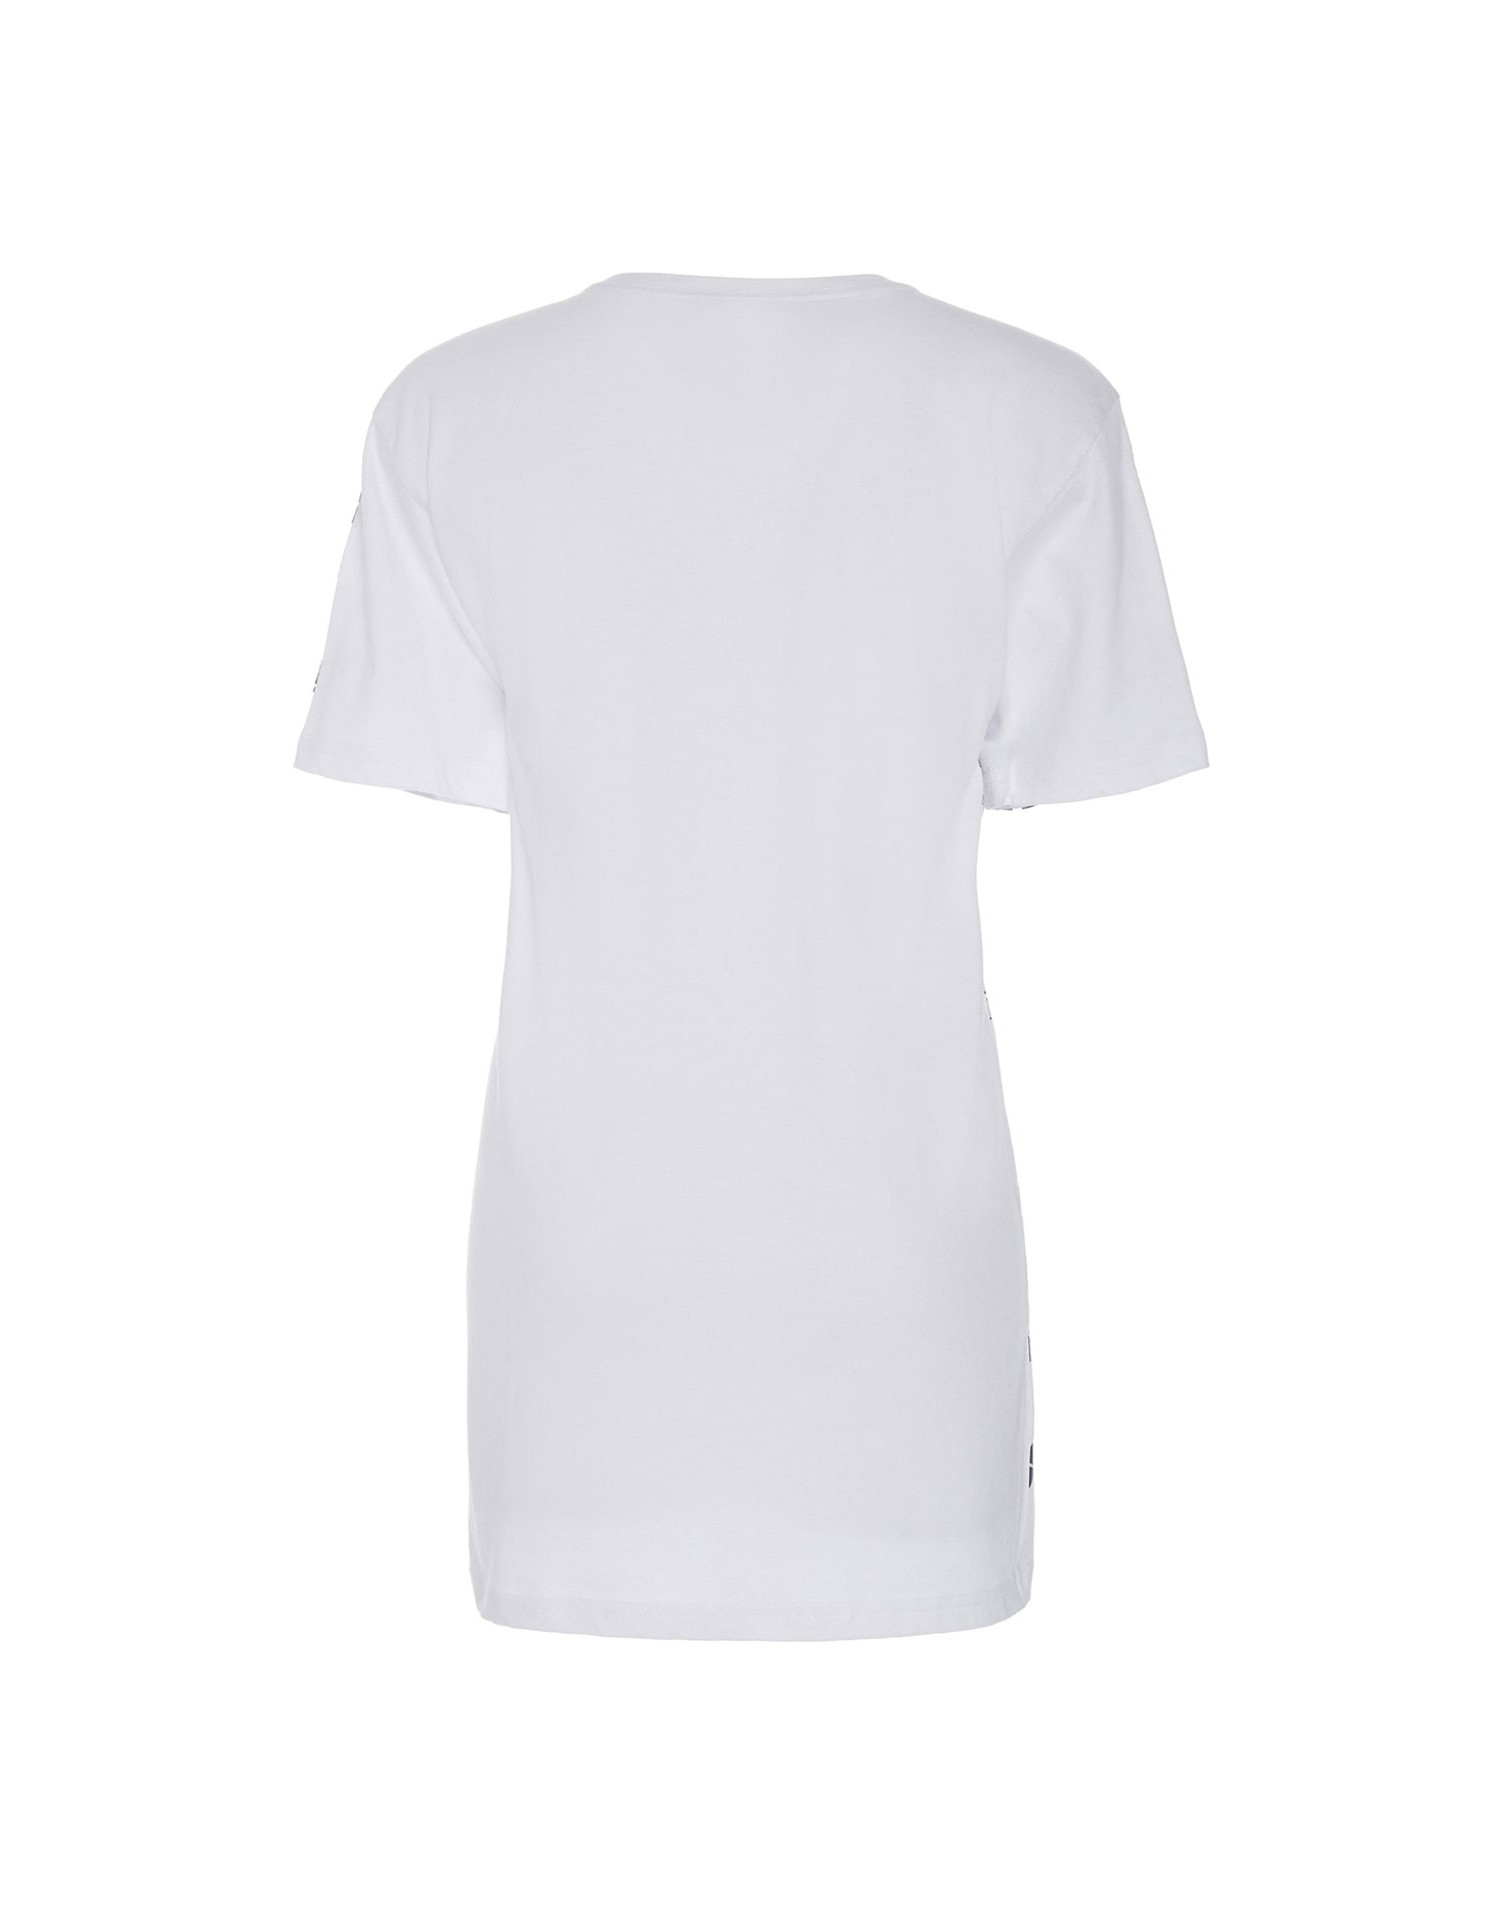 Monse Unisex Rope Print Tee Back